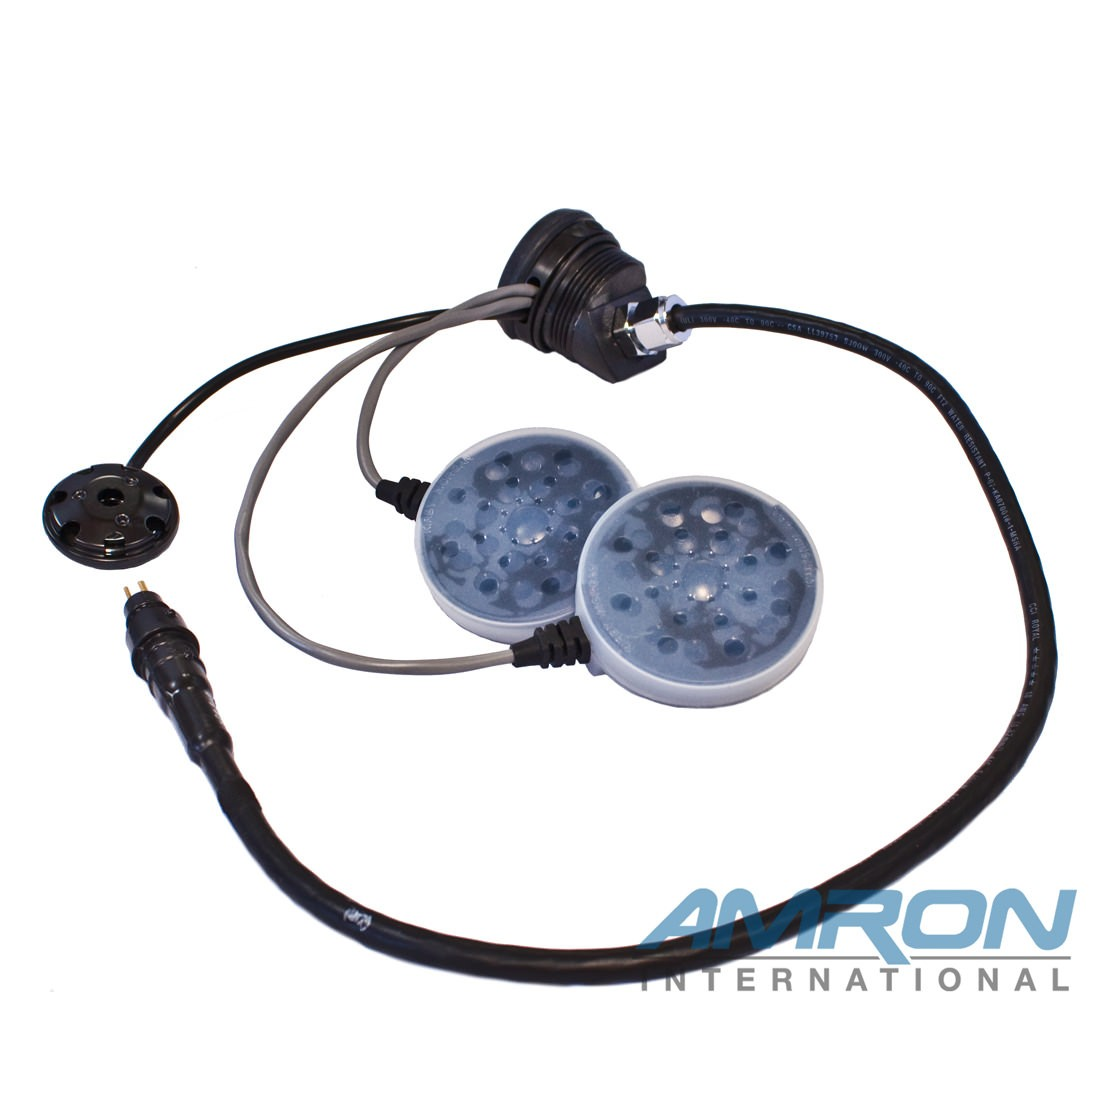 Kirby Morgan 515-024 Communication Assembly with Male Waterproof Connectors